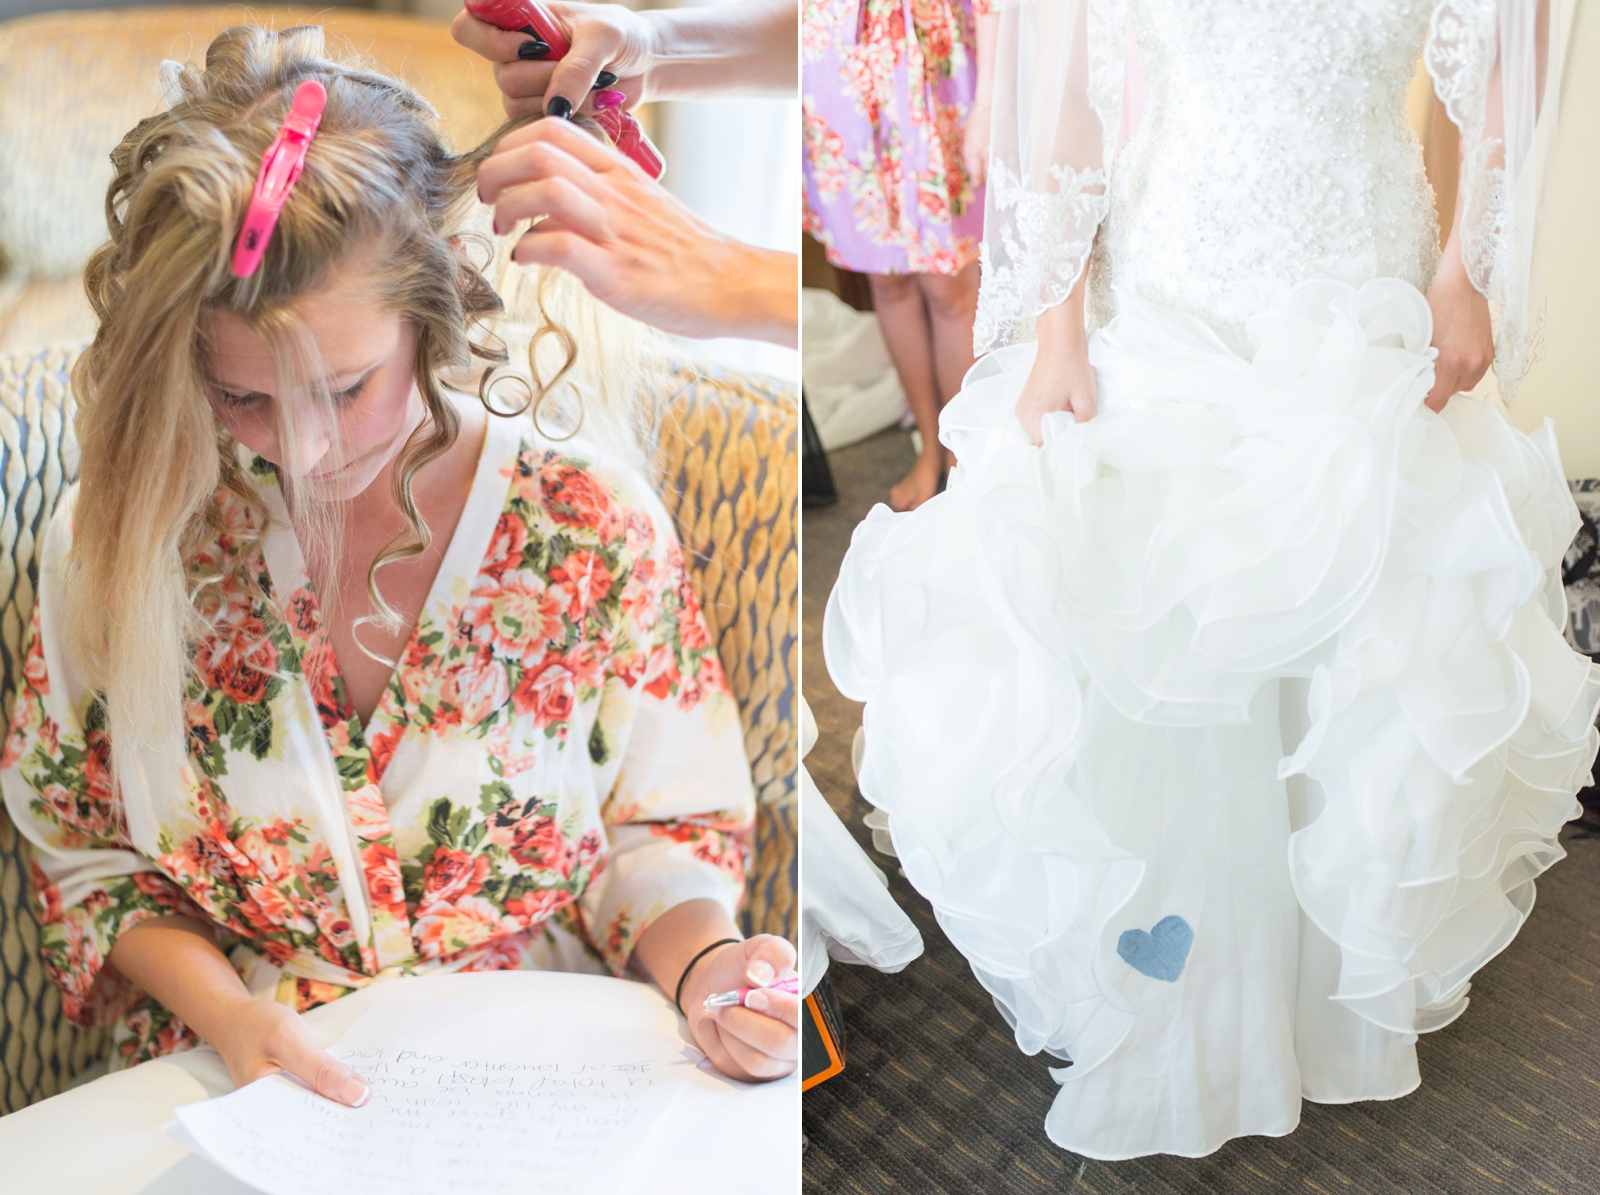 bride-writing-a-letter-to-the-groom-before-the-ceremony